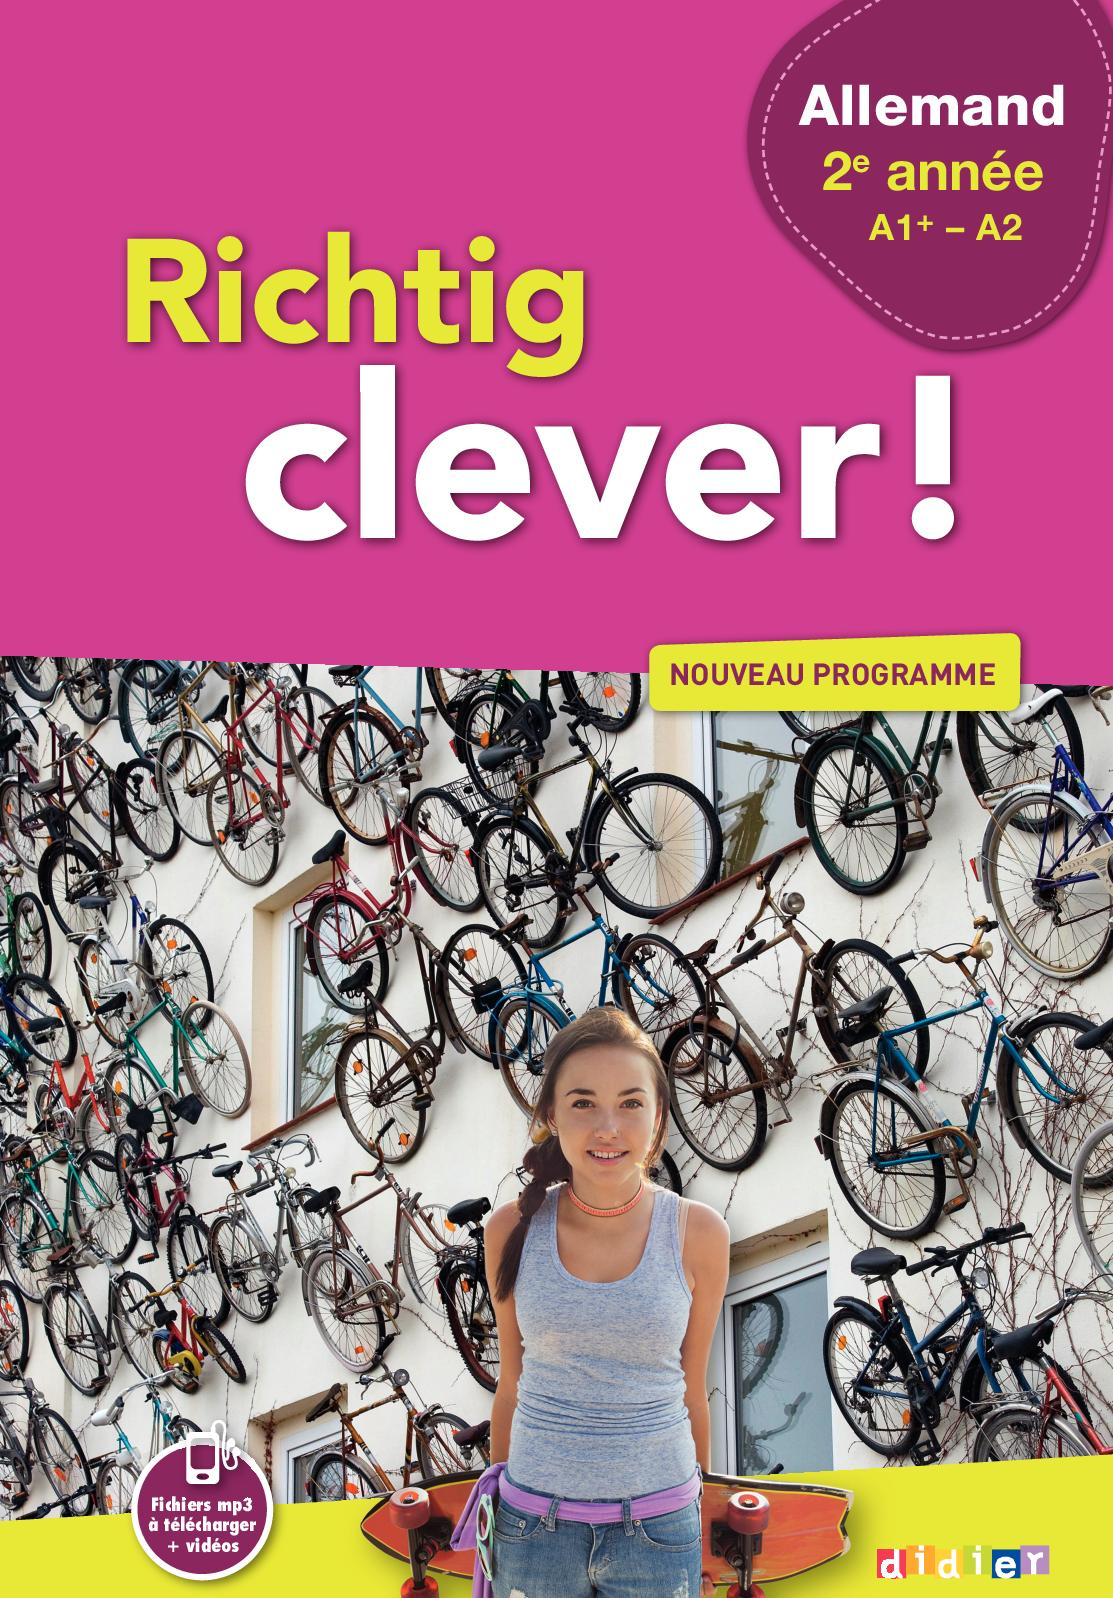 Extrait - Richting Clever 2e Annee